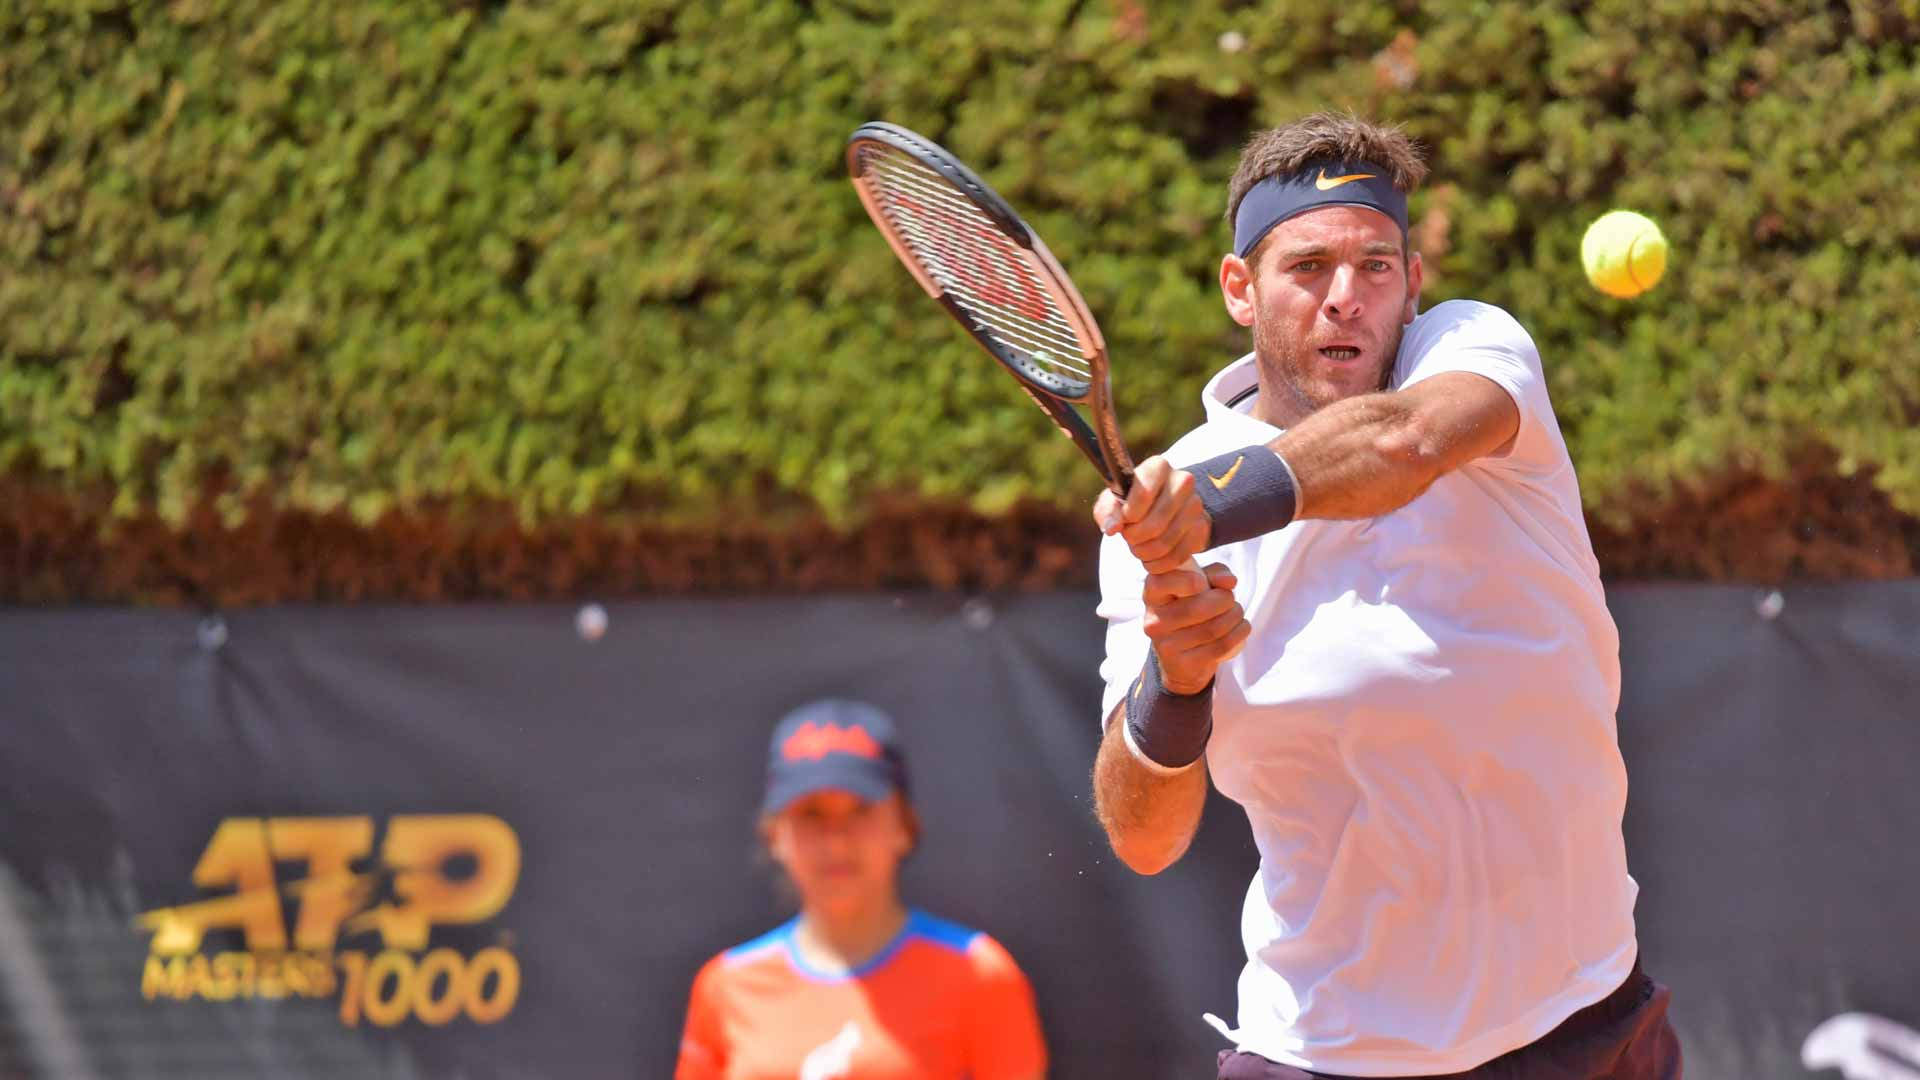 Del Potro hits a backhand in Rome